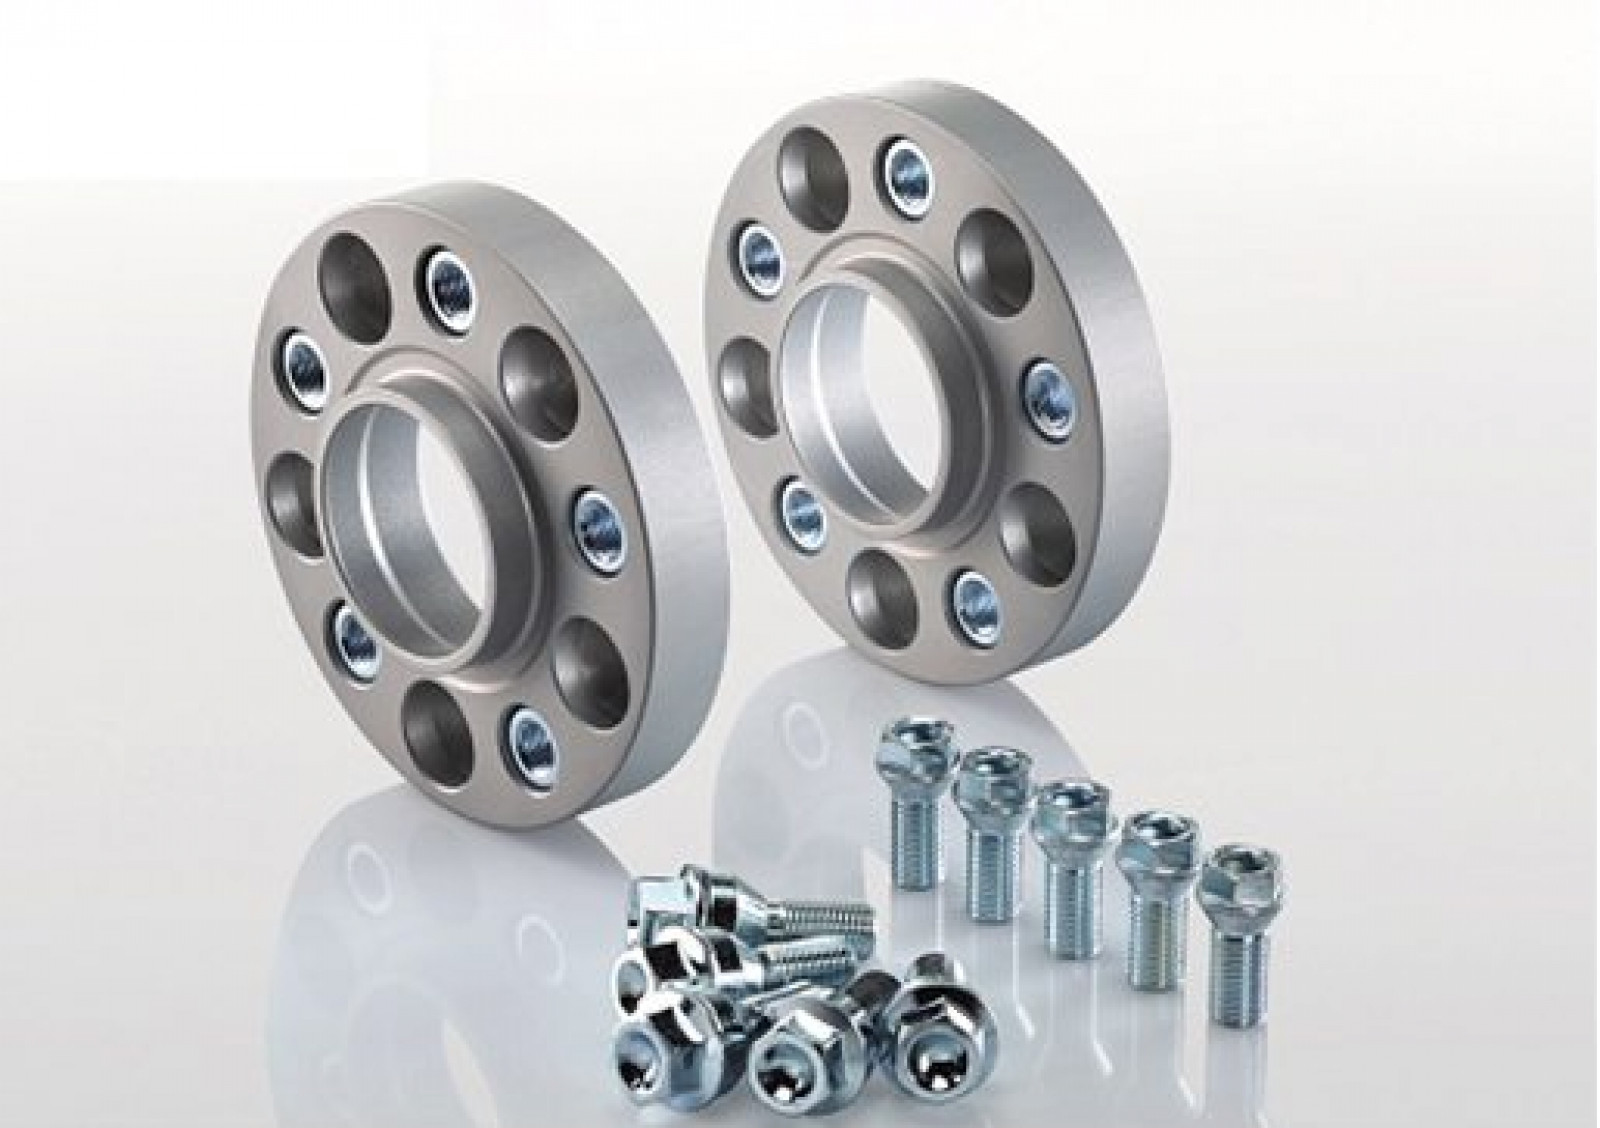 Mercedes benz 60mm hubcentric wheel spacer kit for Wheel spacers for mercedes benz